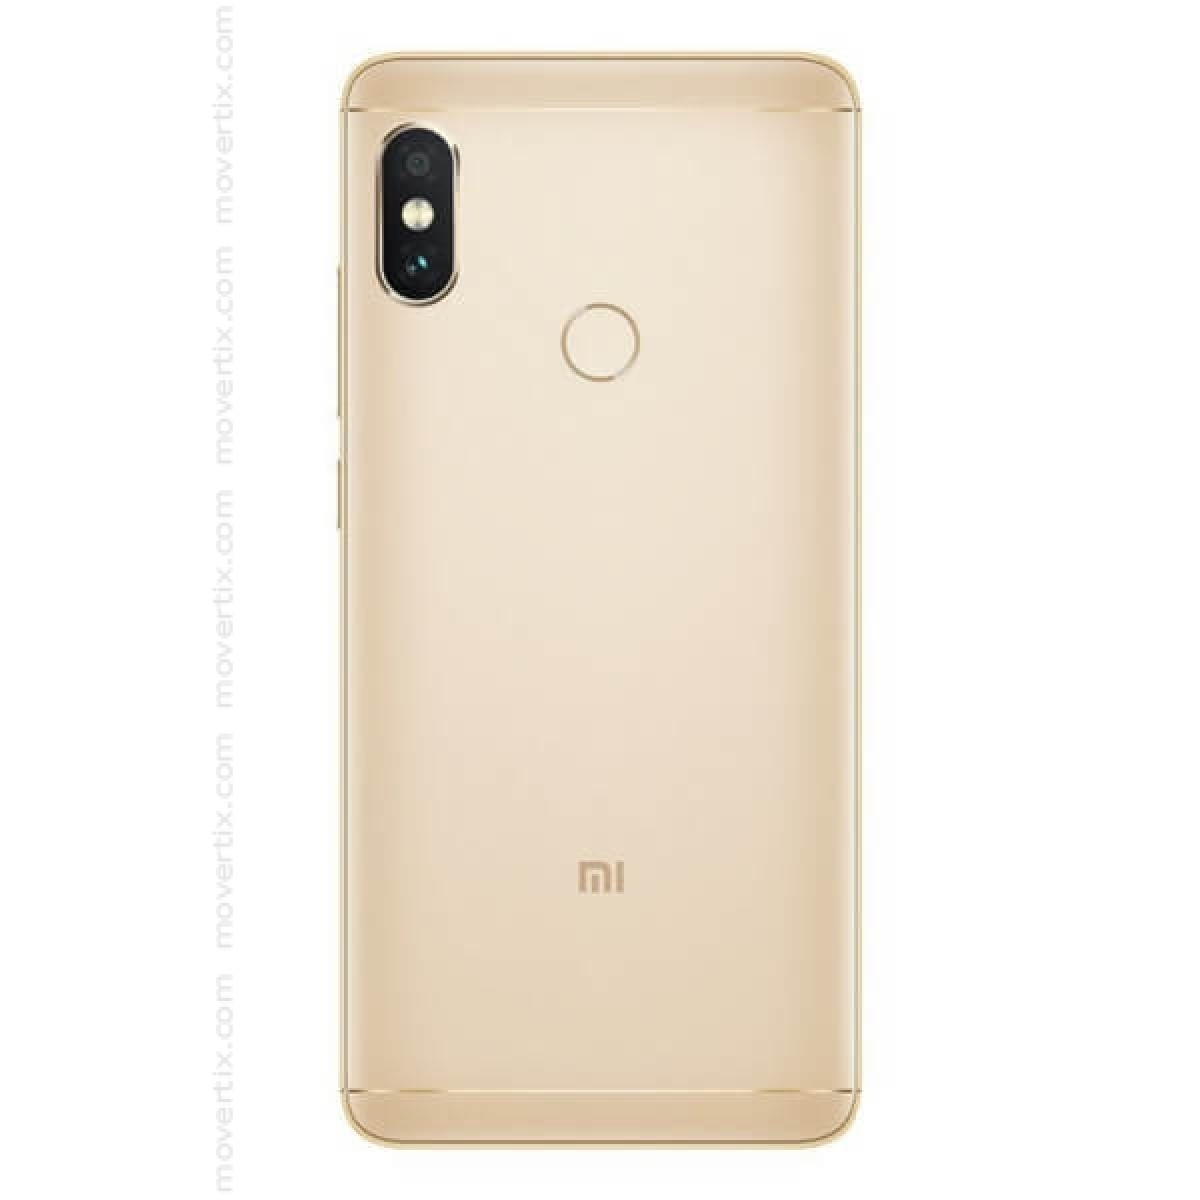 f25f94cdf54a The Xiaomi Redmi Note 5 in gold color has a 5.99-inch screen and 18:9  format and Xiaomi's innovative dual camera with Artificial Intelligence for  brighter ...